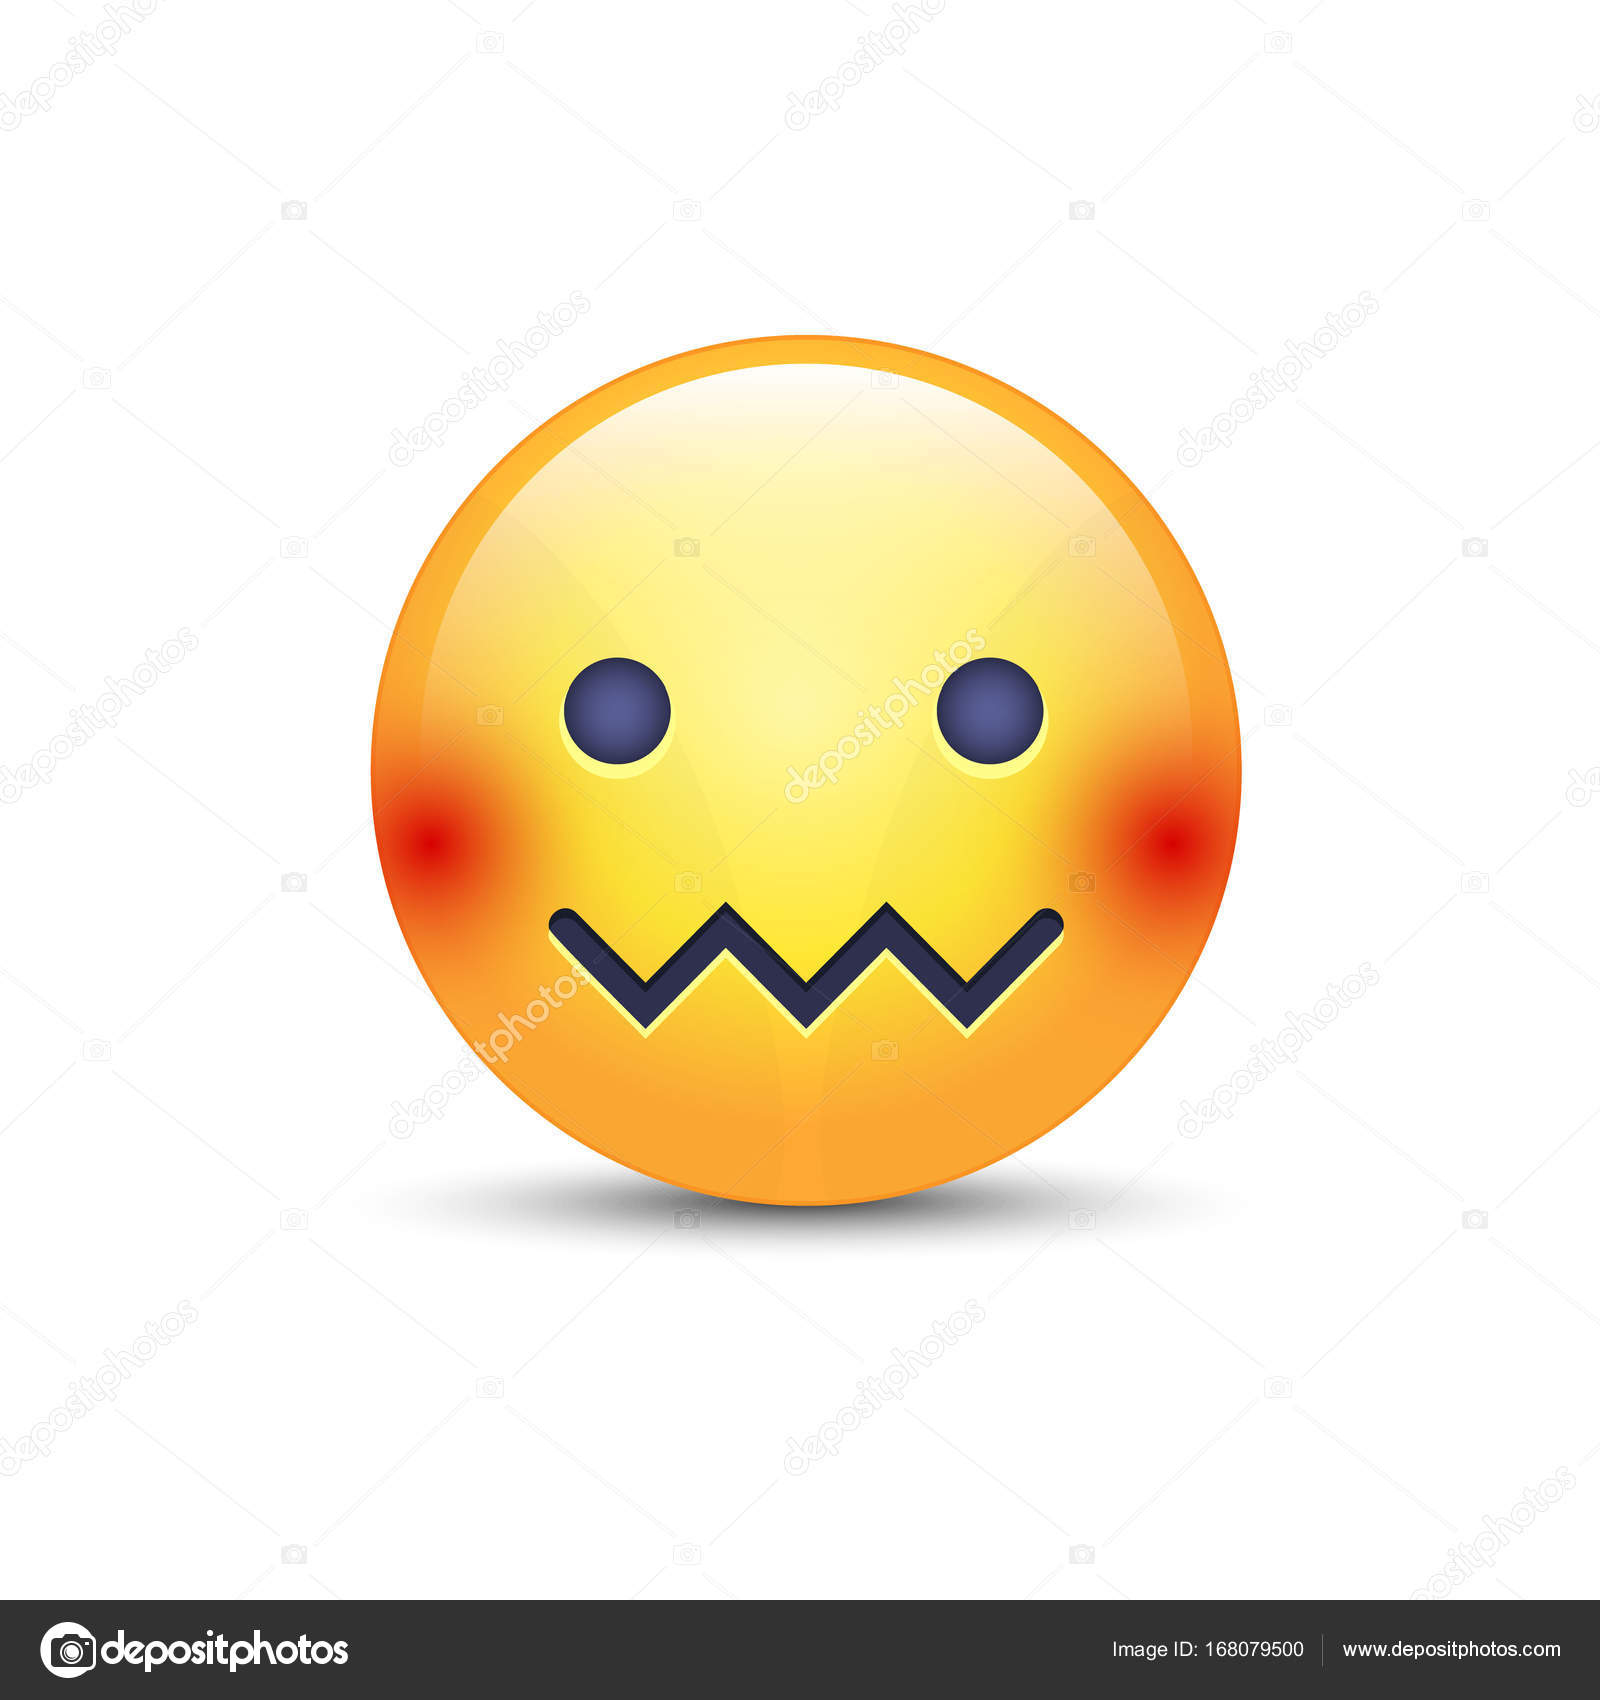 Blank Face Emoji as well Smileys People Ios besides Emoji Faces besides 1054823 Royalty Free Emoticon Clipart Illustration as well Samsung Galaxy S7 Emoji Changelog. on zipper mouth smiley